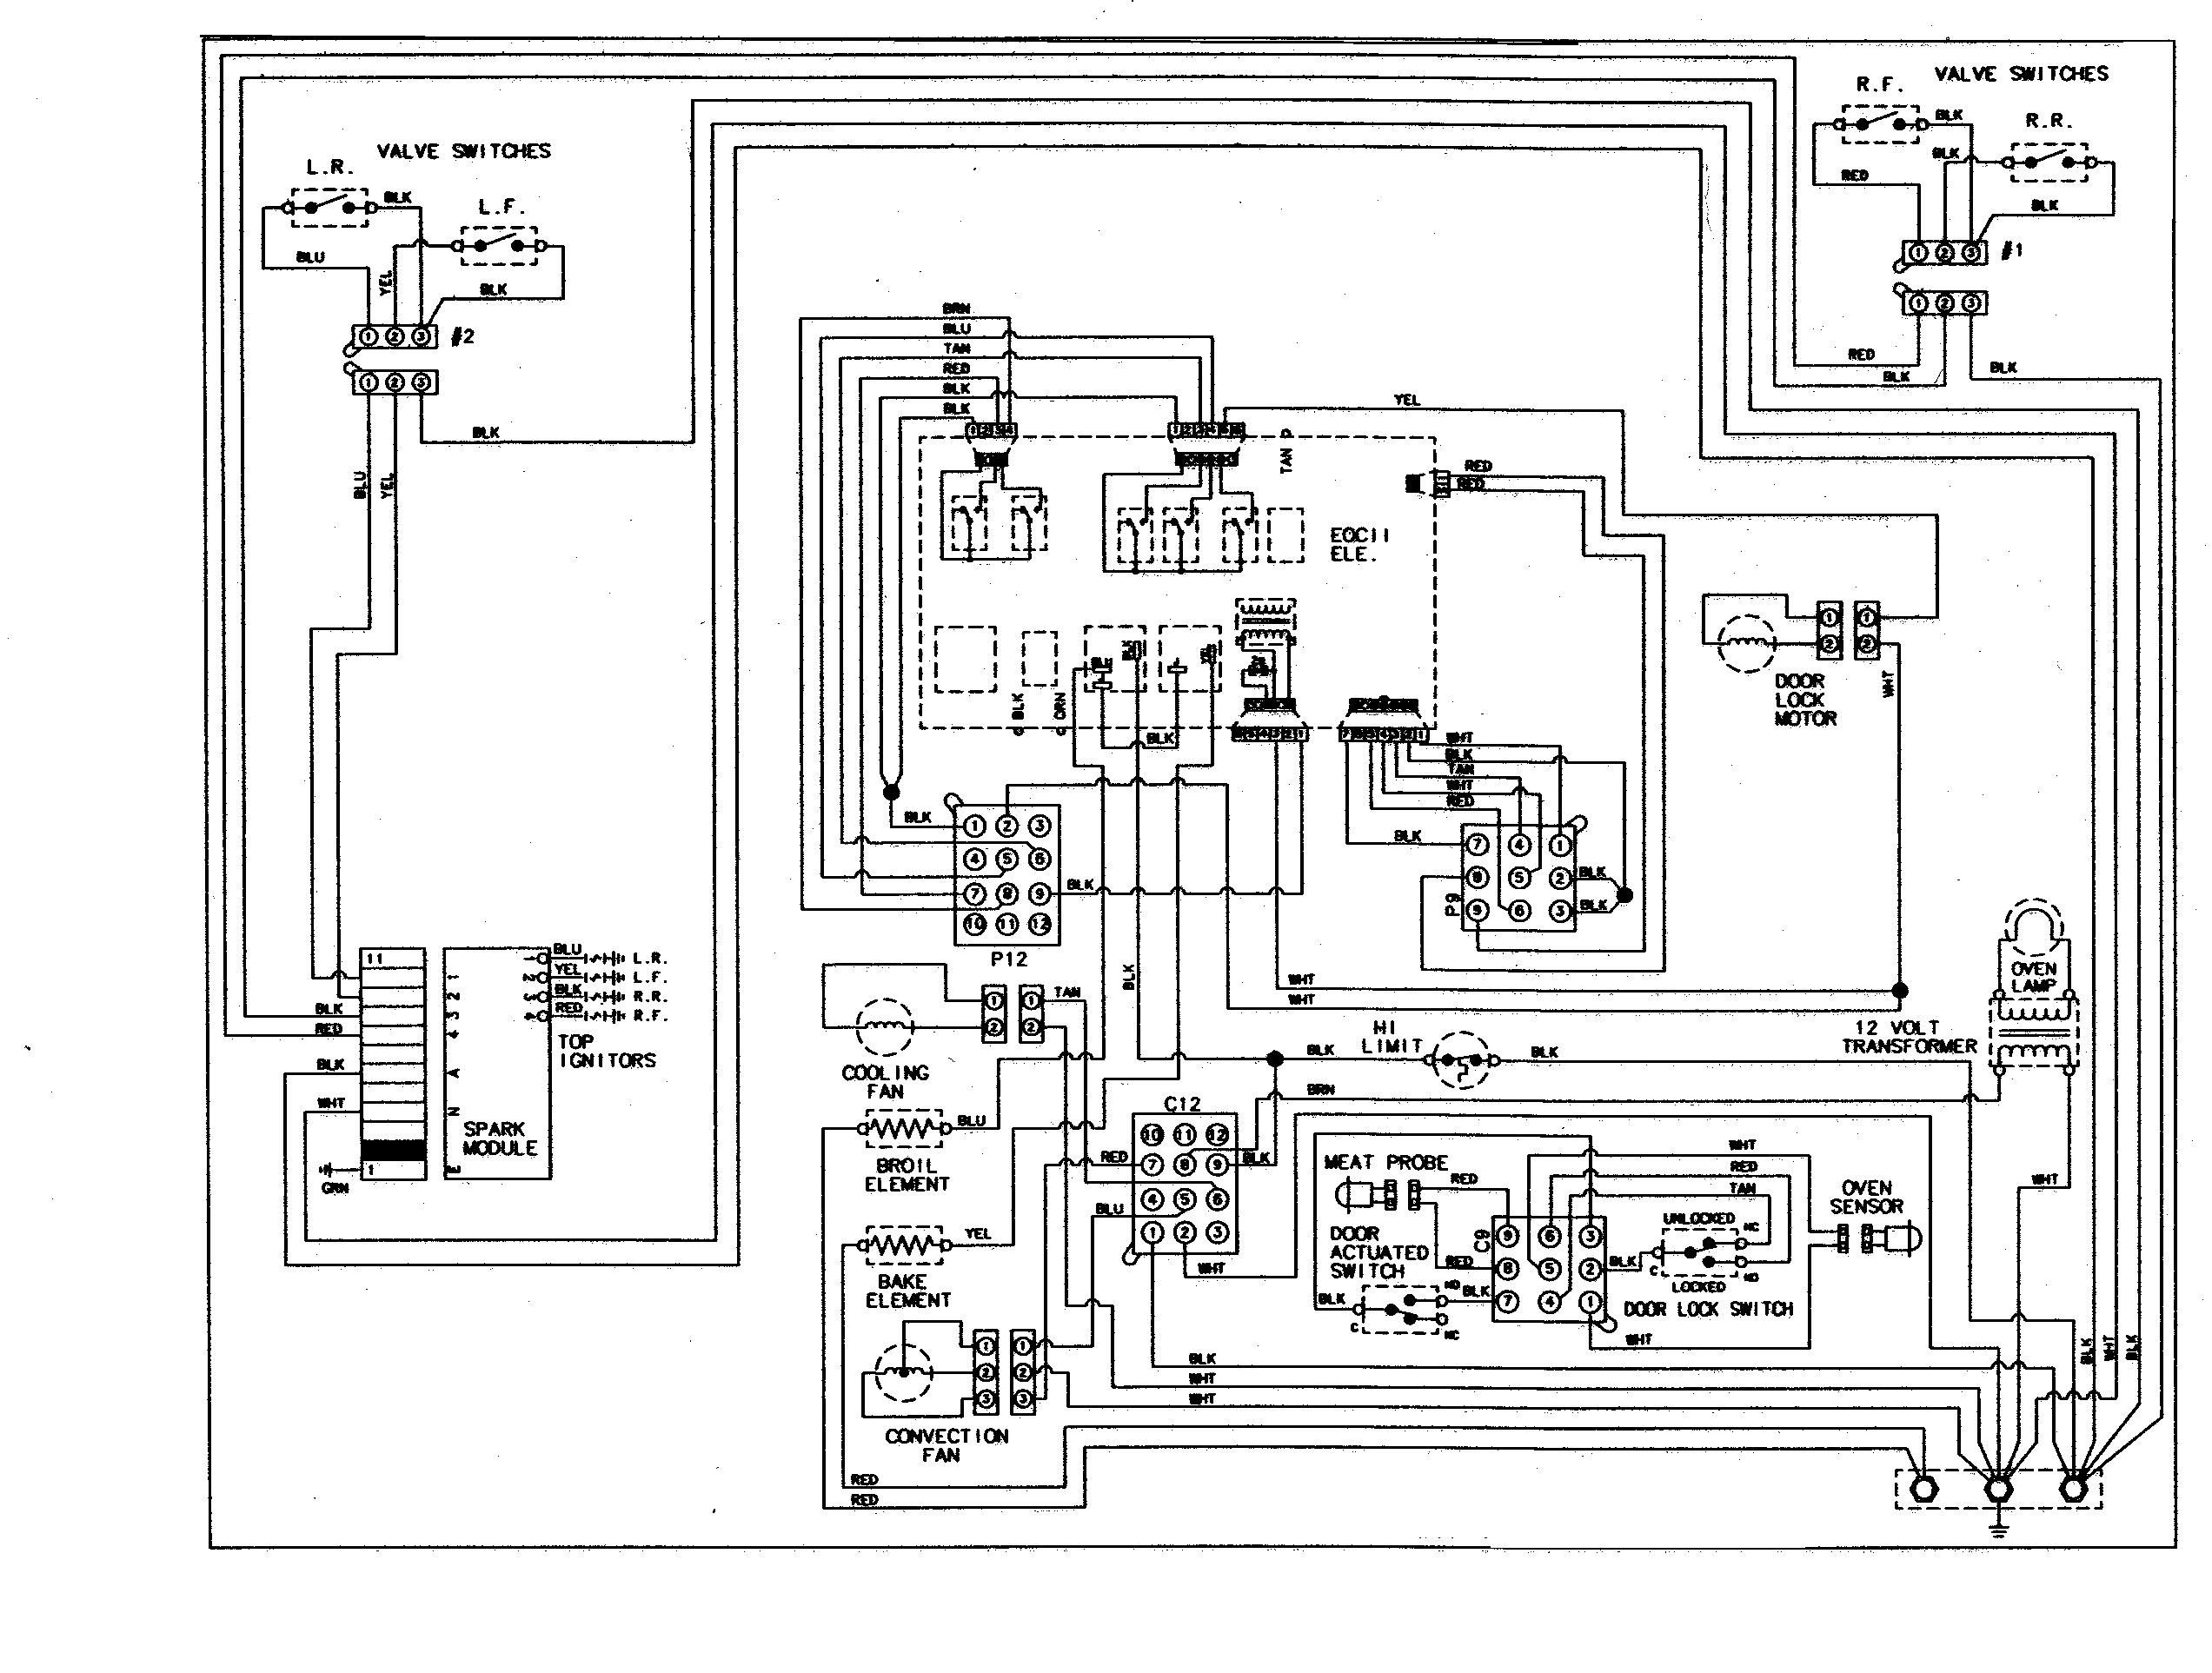 Ge Appliances Wiring Diagrams Not Lossing Diagram Whirlpool Cabrio Dryer Parts Images Frompo Jenn Air Jds8850ass Timer Stove Clocks And Appliance Timers General Electric Refrigerator Washer